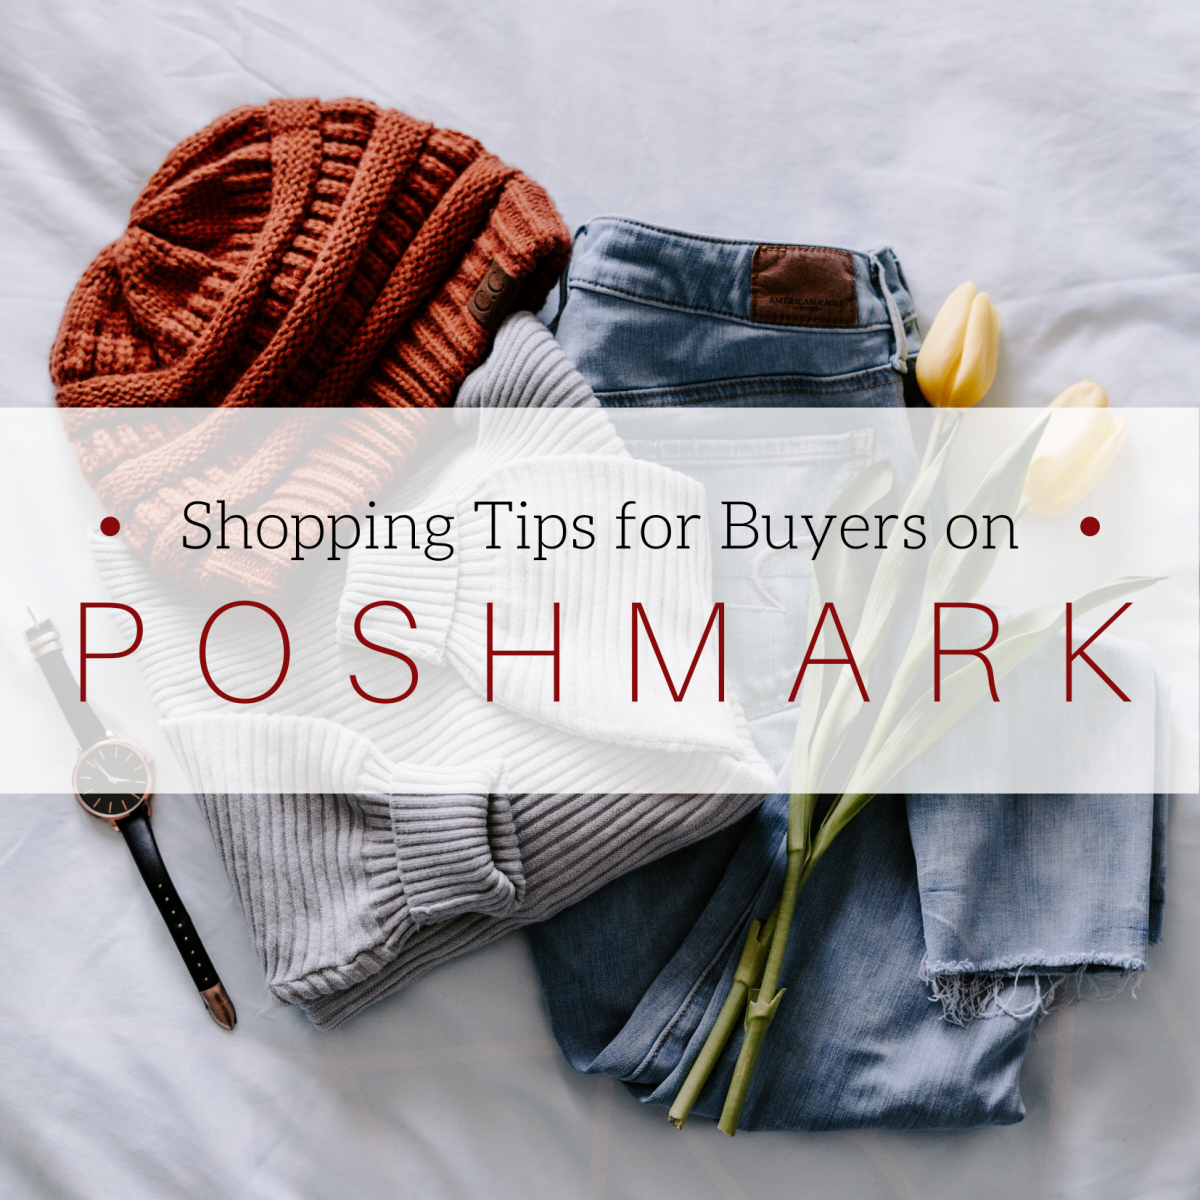 Shopping on Poshmark is a great way to get stellar deals on gently used clothing. Shop smart with the tips in this article.